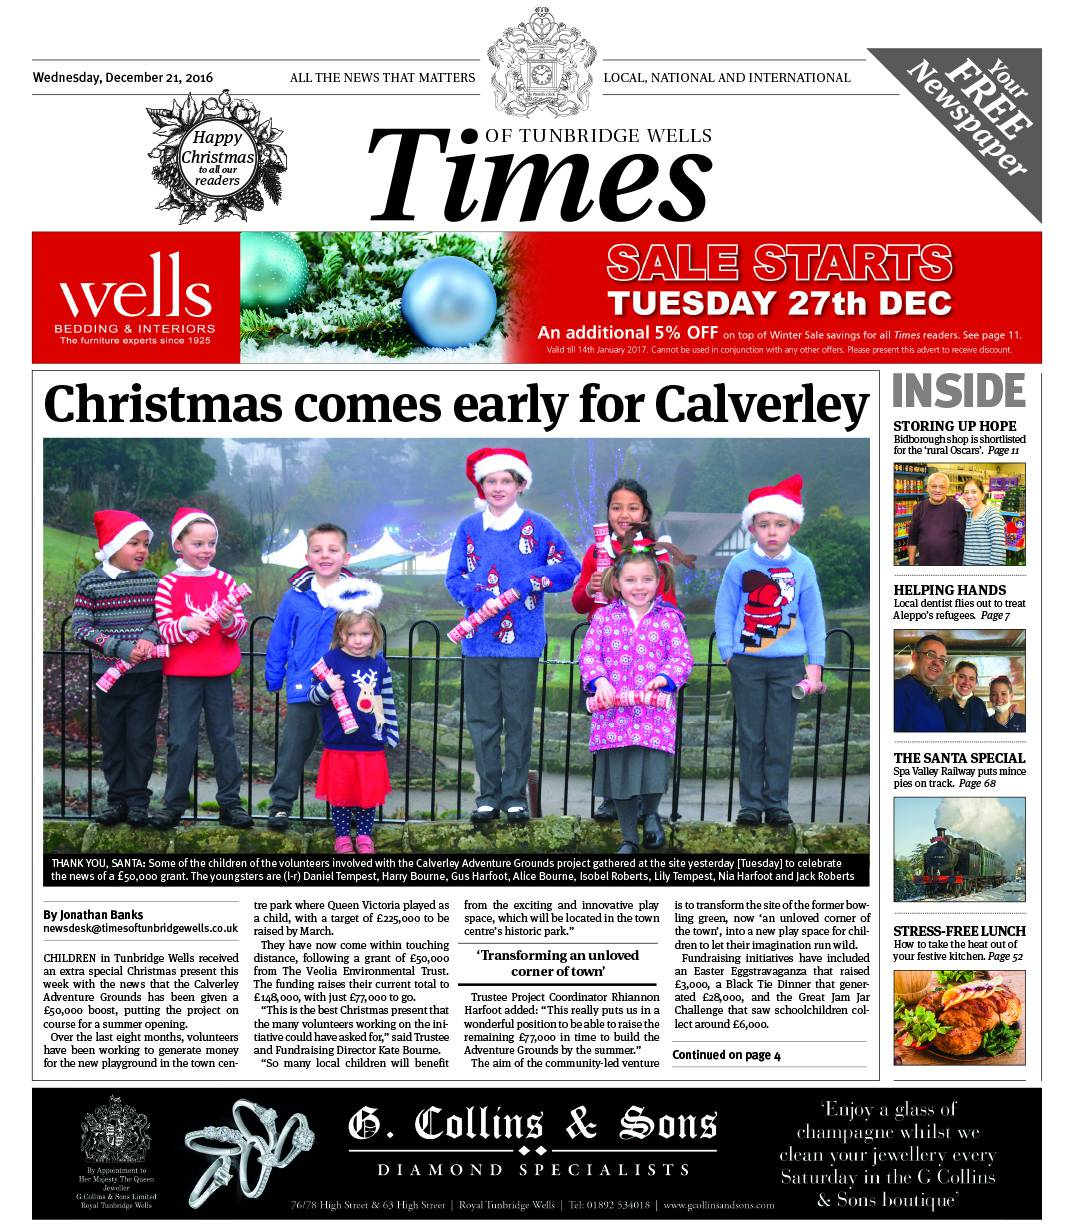 Read the Times of Tunbridge Wells - 21st December 2016